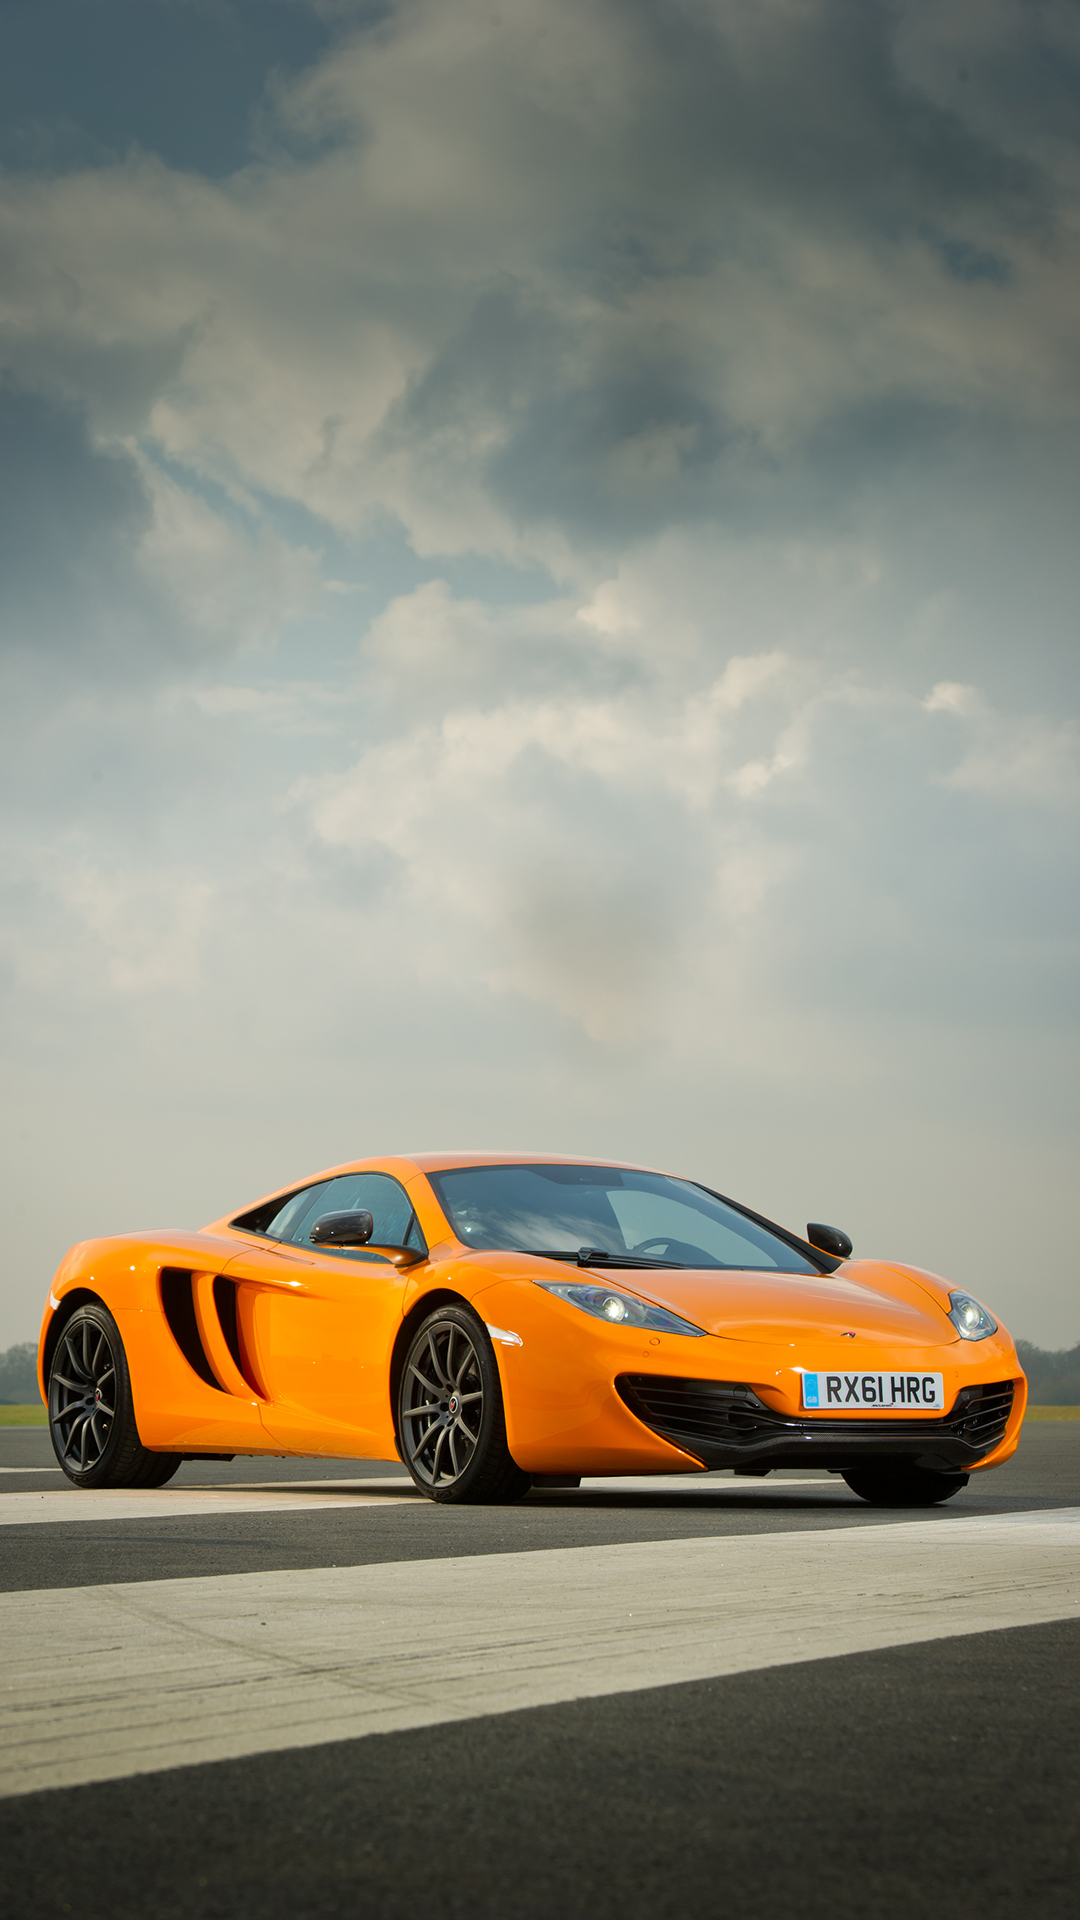 McLaren htc one wallpaper